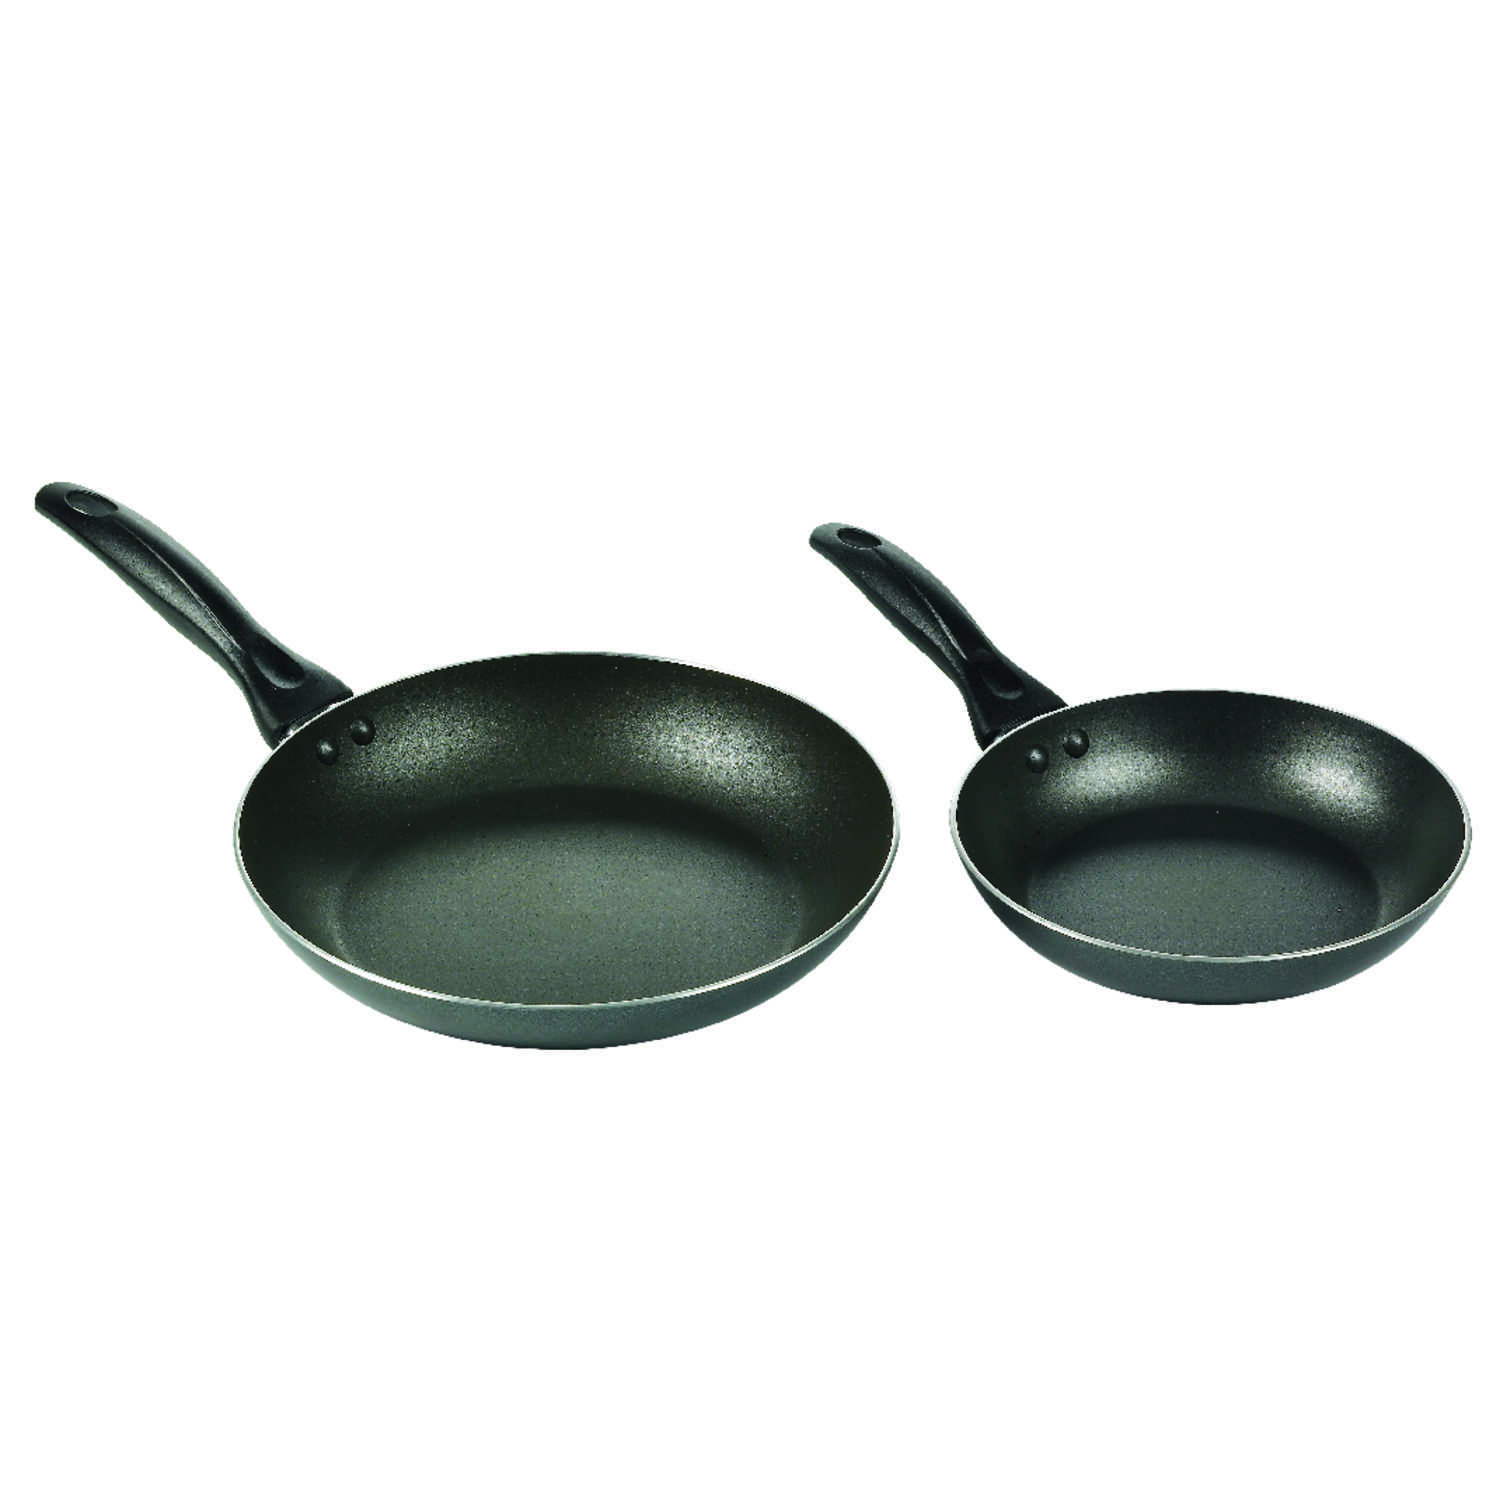 T-Fal  Aluminum  Fry Pan Set  8 & 10 in. Black